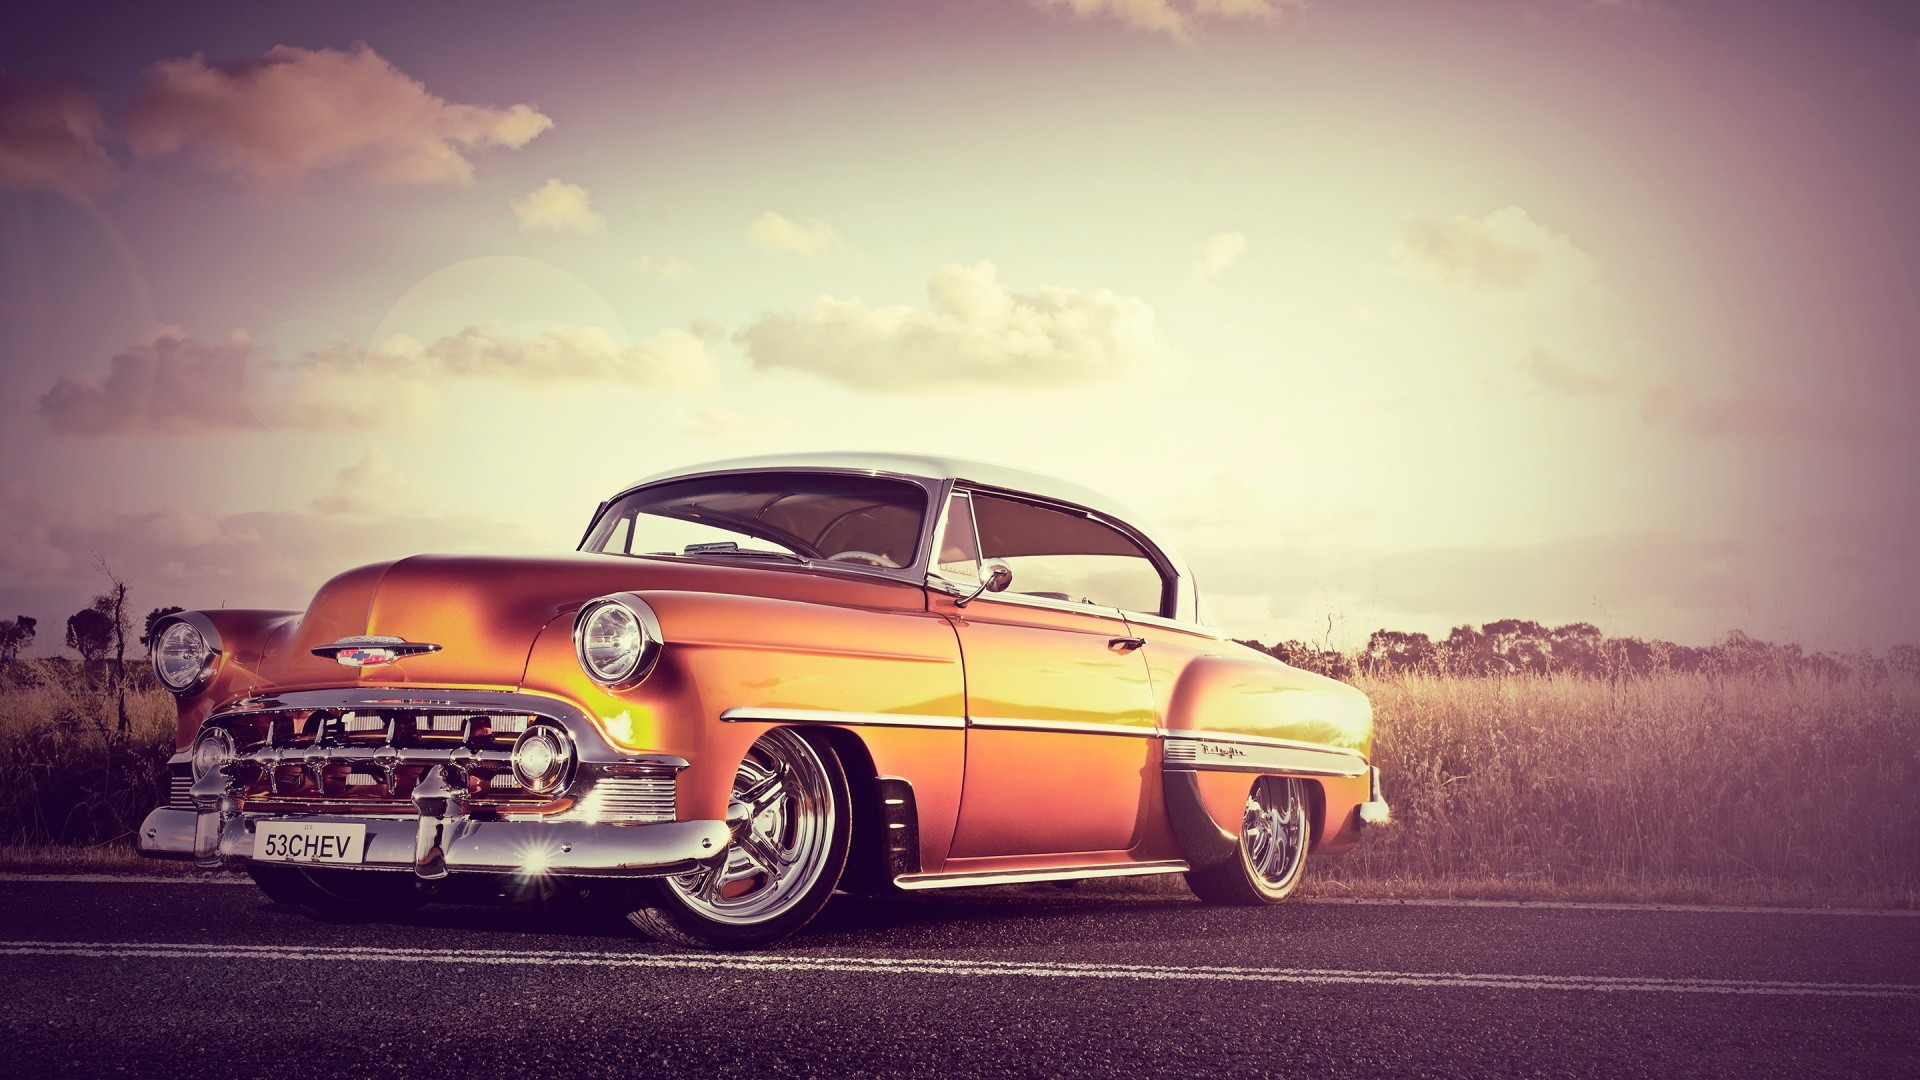 1920x1080 Old Classic Chevy Desktop Background. Download  ...